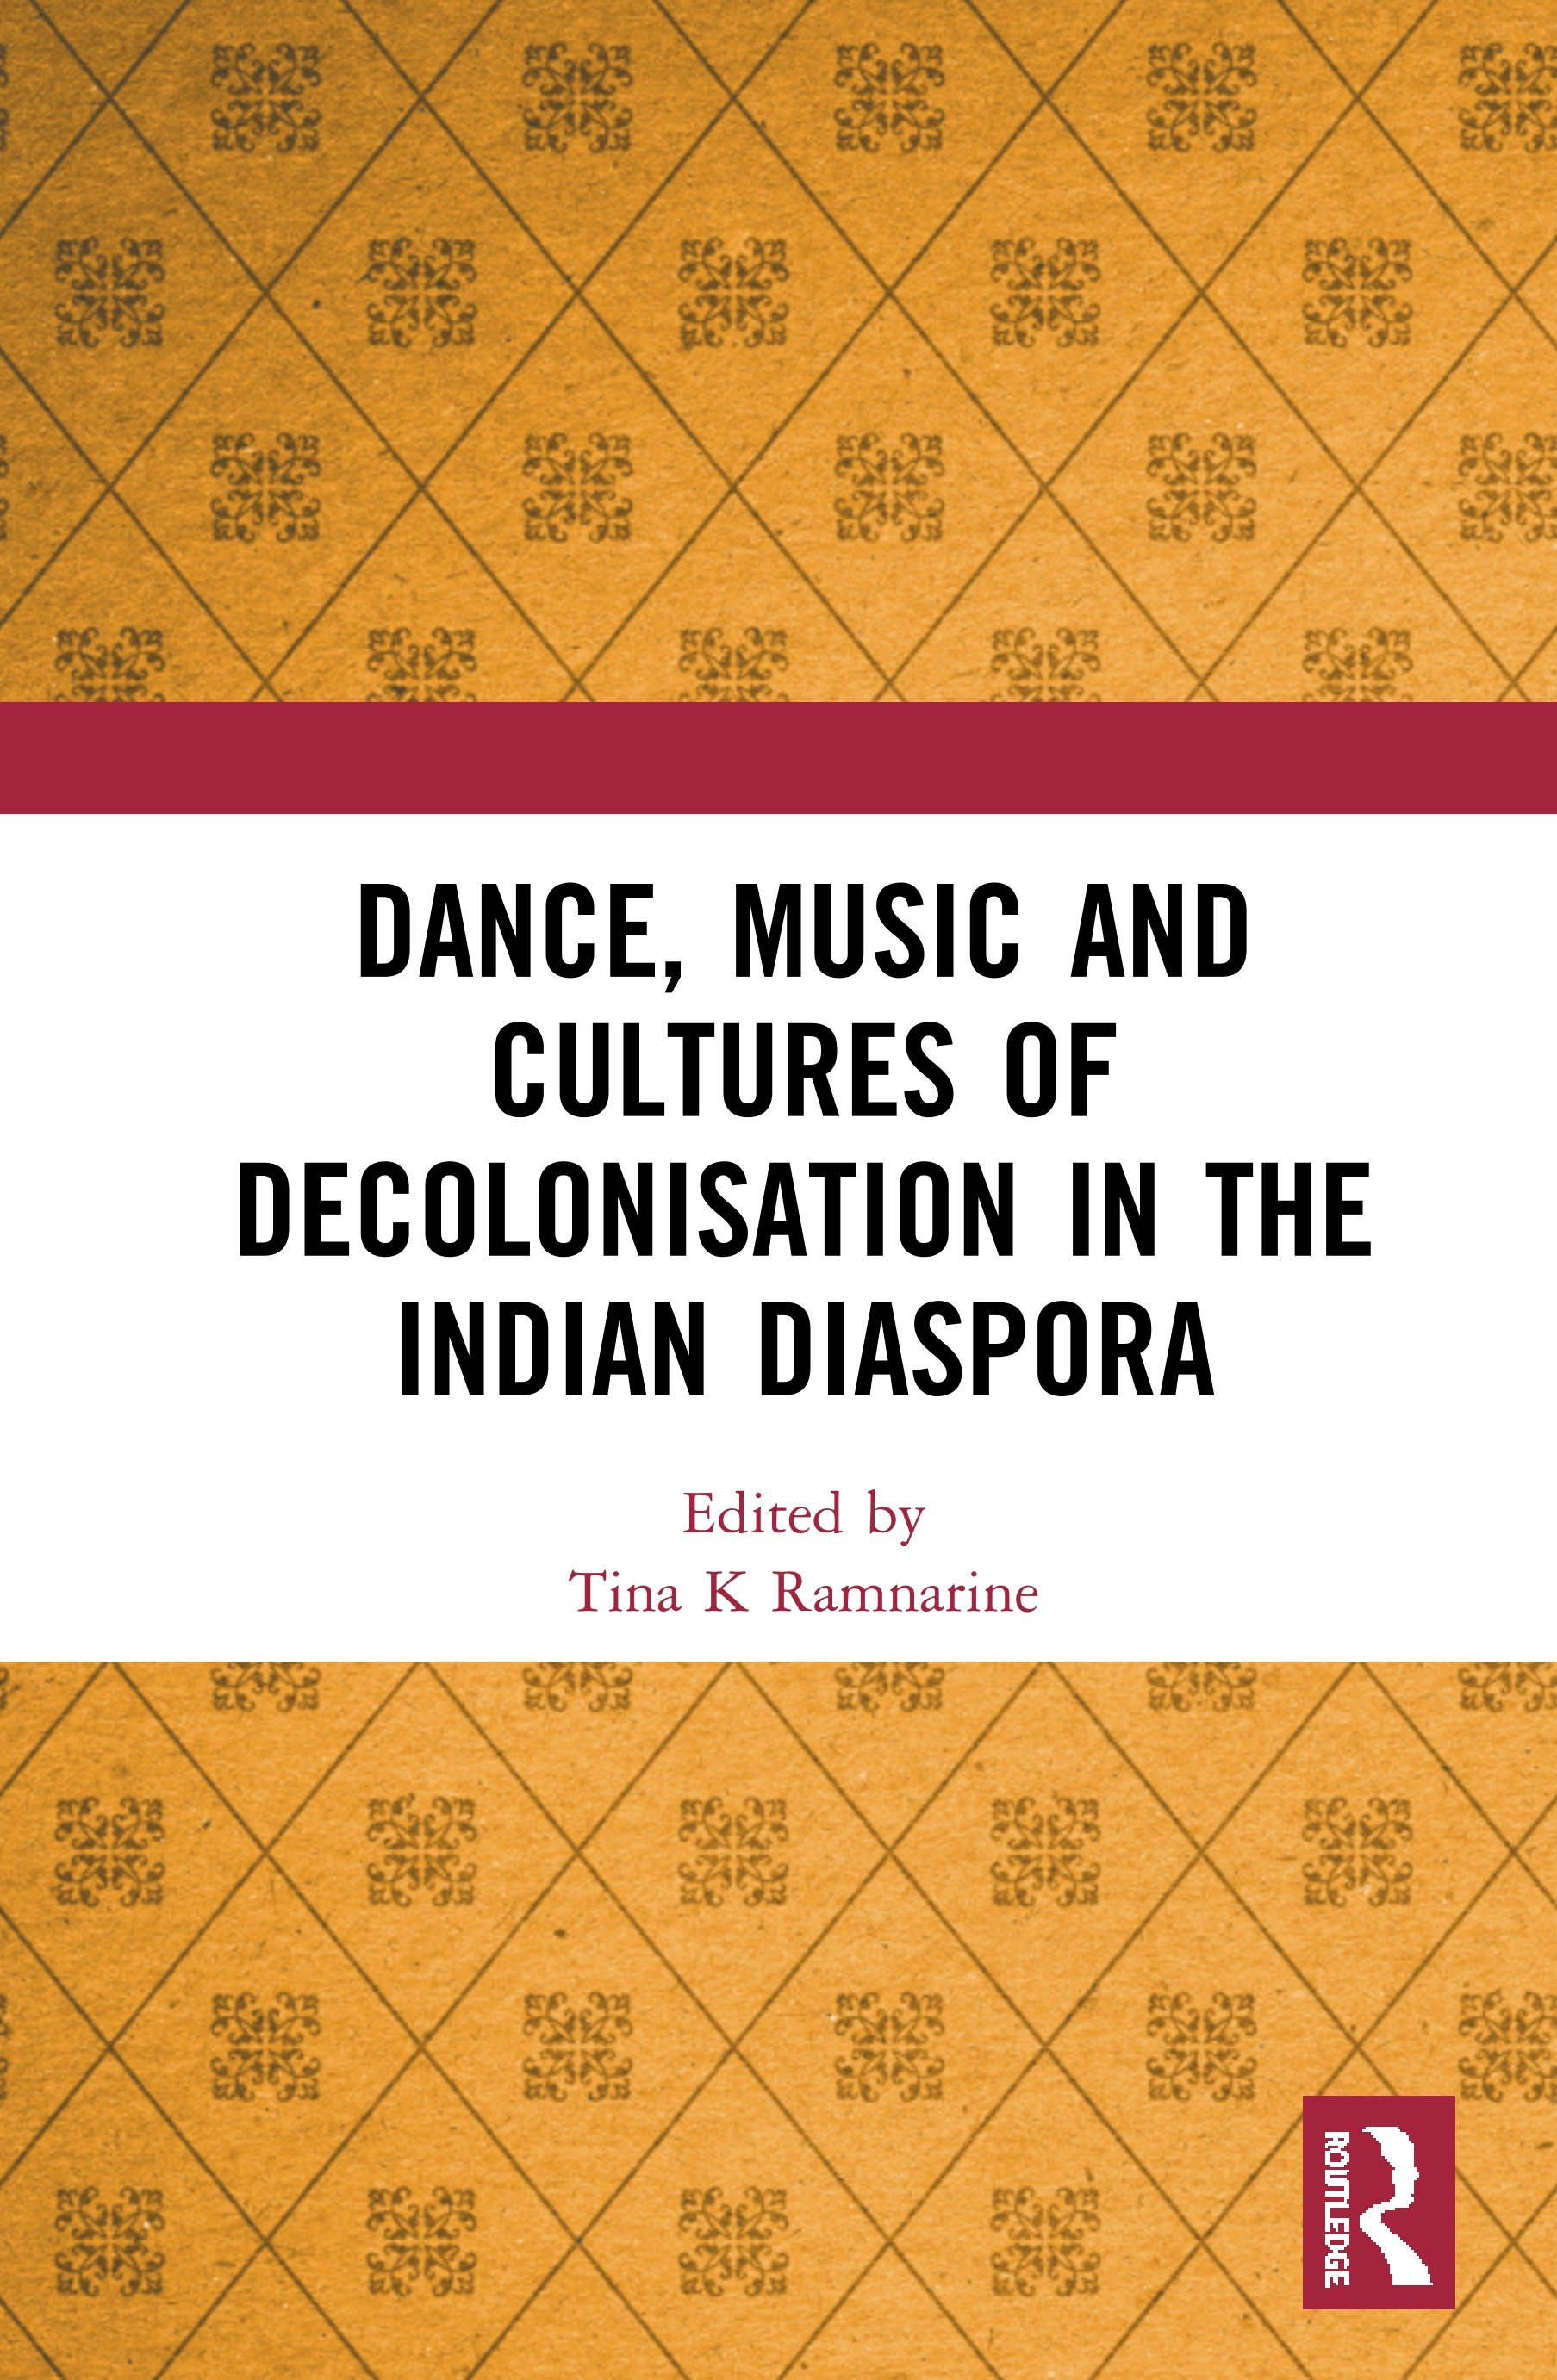 Dance, Music and Cultures of Decolonisation in the Indian Diaspora: 1st Edition (Hardback) book cover